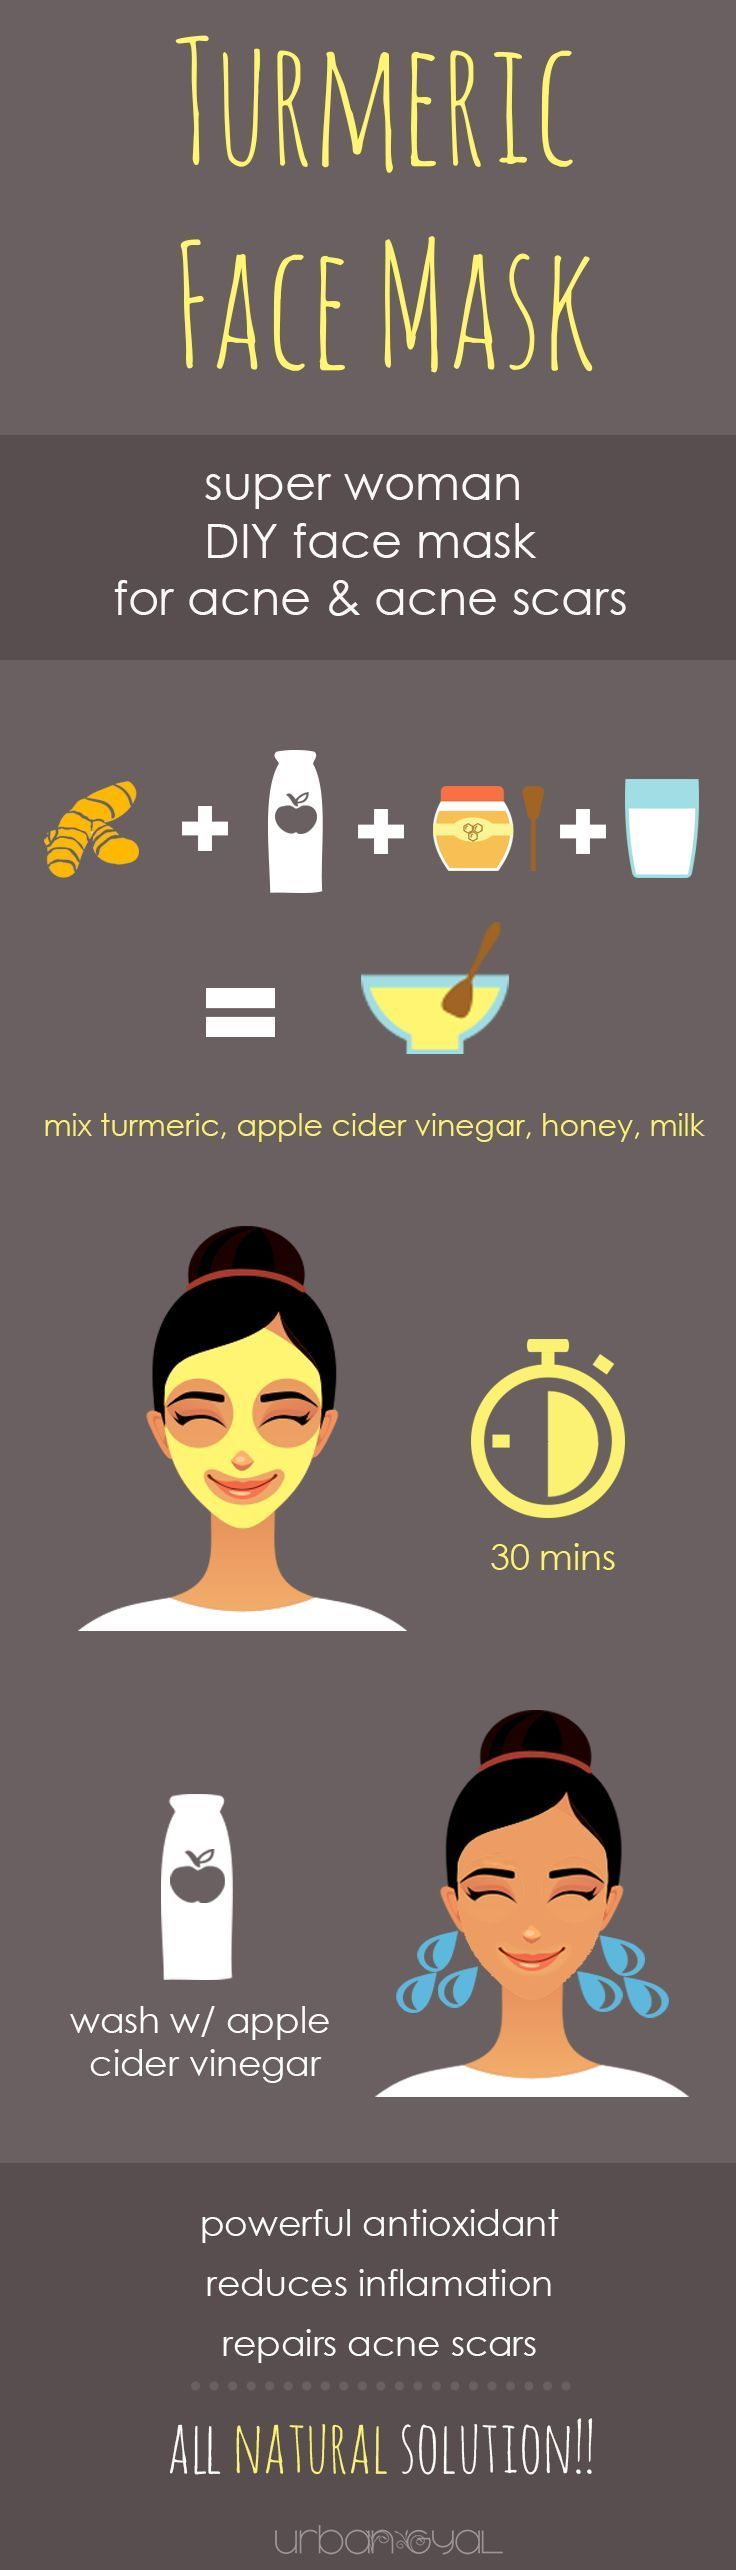 DIY Turmeric Face Mask! In 1 week the results will AMAZE you. One of my favorite DIY face masks, the turmeric face mask is amazing as reducing acne & acne scars.